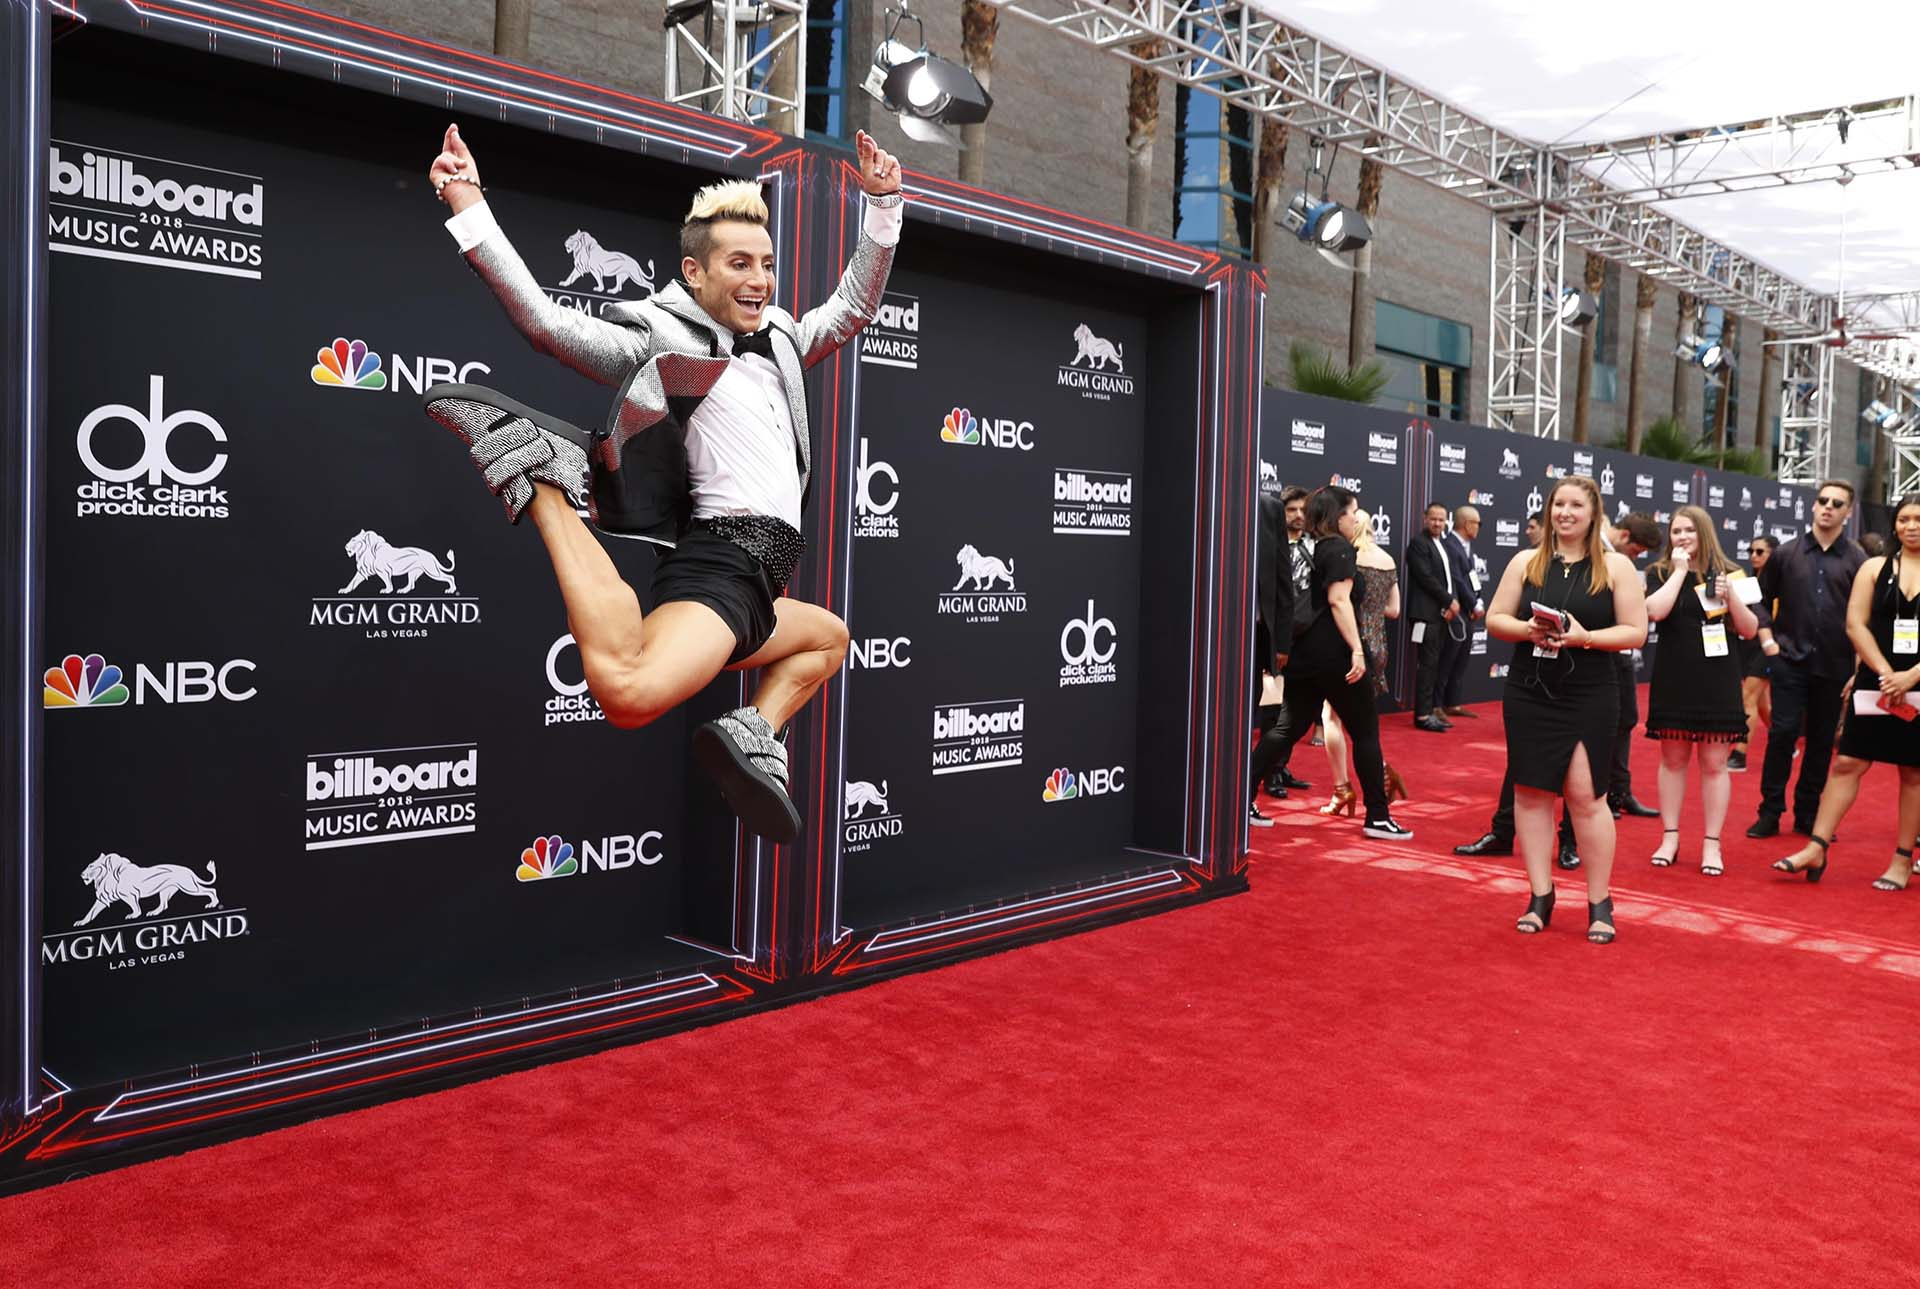 2018 Billboard Music Awards – Arrivals – Las Vegas, Nevada, U.S., 20/05/2018 – Frankie J. Grande. REUTERS/Steve Marcus